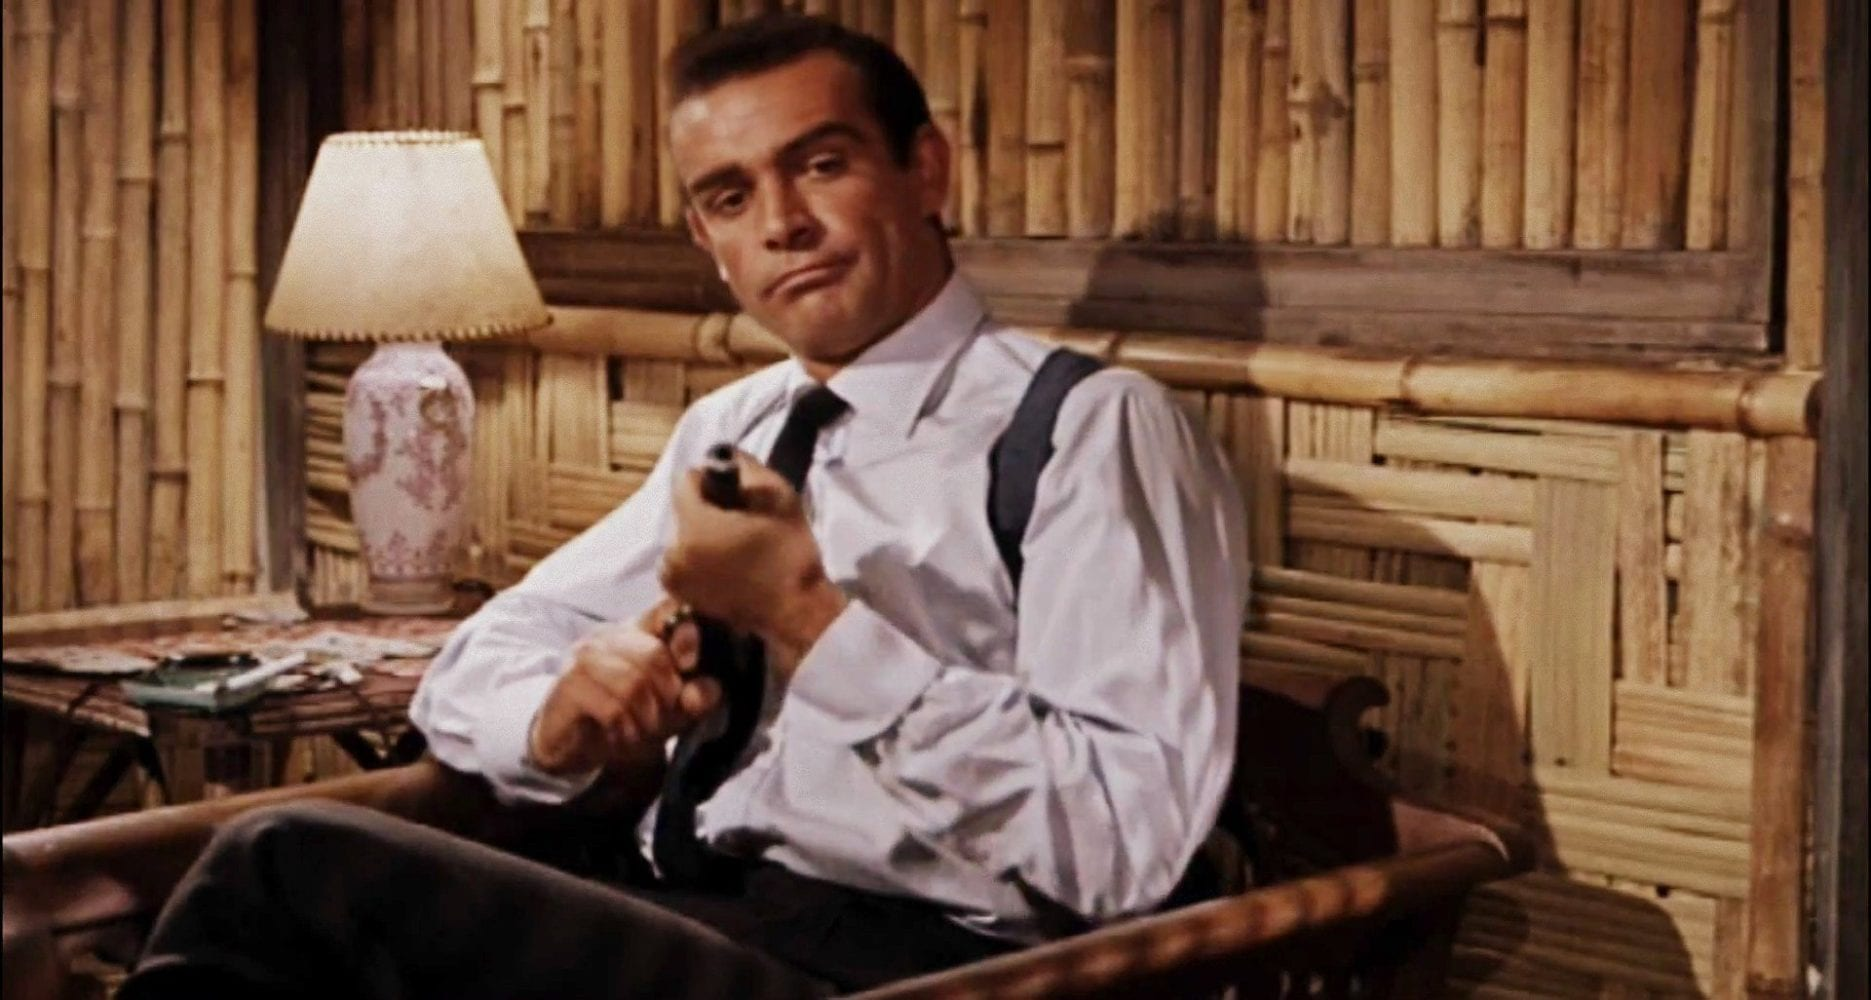 Intermission, you've had your six, James Bond, Dr. No, Sean Connery, 007